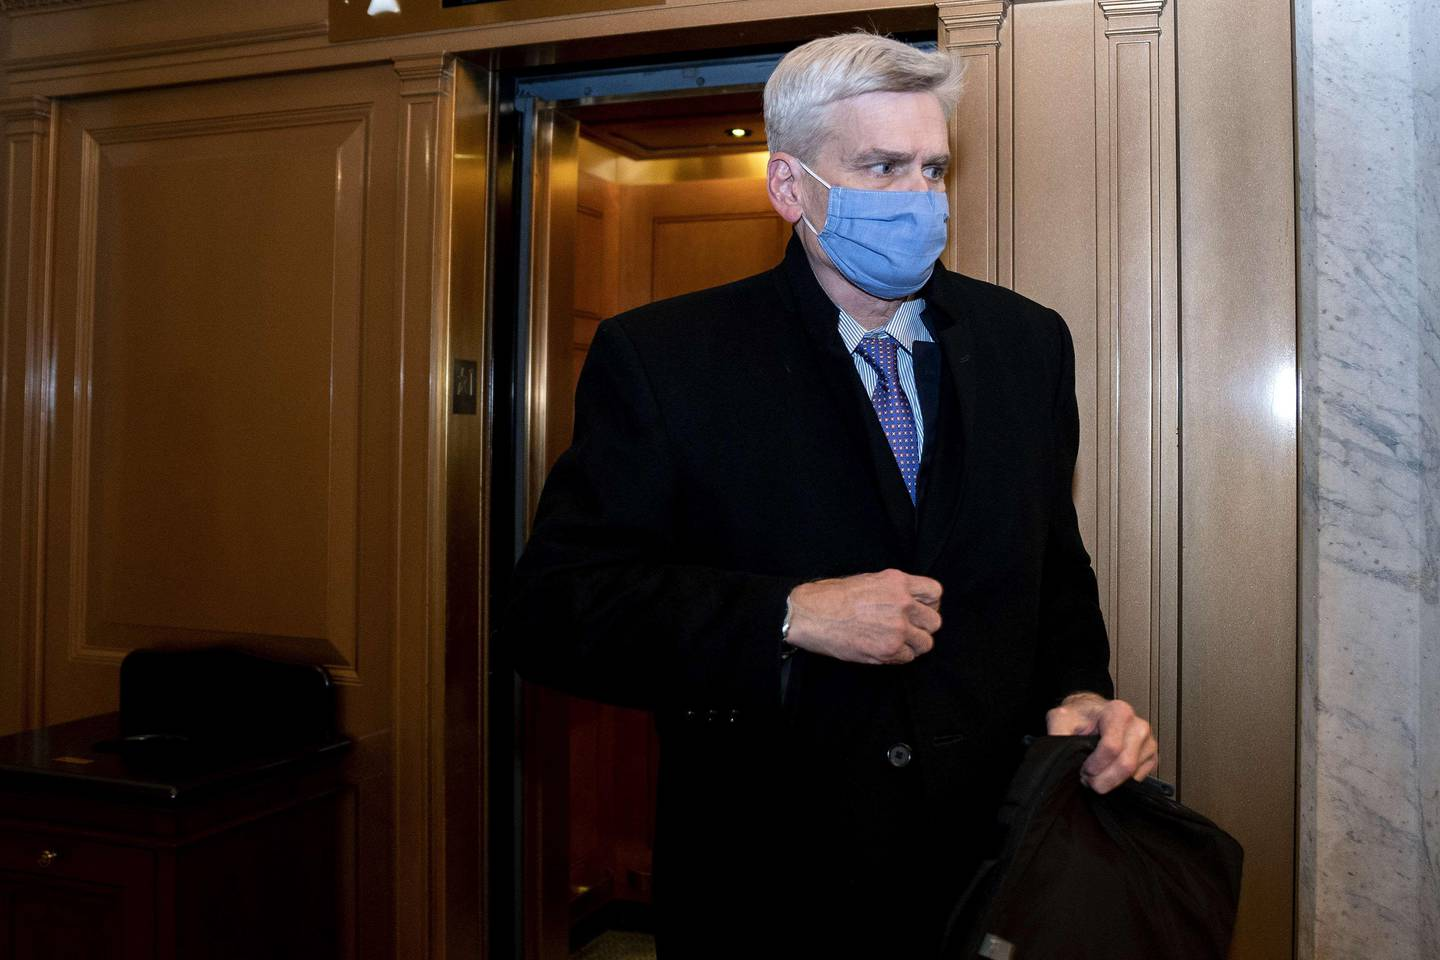 WASHINGTON, DC - FEBRUARY 13: Sen. Bill Cassidy (R-LA) wears a protective mask while departing the U.S. Capitol on February 13, 2021 in Washington, D.C. Former President Donald Trump's second impeachment trial ended in a not guilty verdict on a vote of 57-43, short of the two-thirds majority required.   Stefani Reynolds-Pool/Getty Images/AFP == FOR NEWSPAPERS, INTERNET, TELCOS & TELEVISION USE ONLY ==